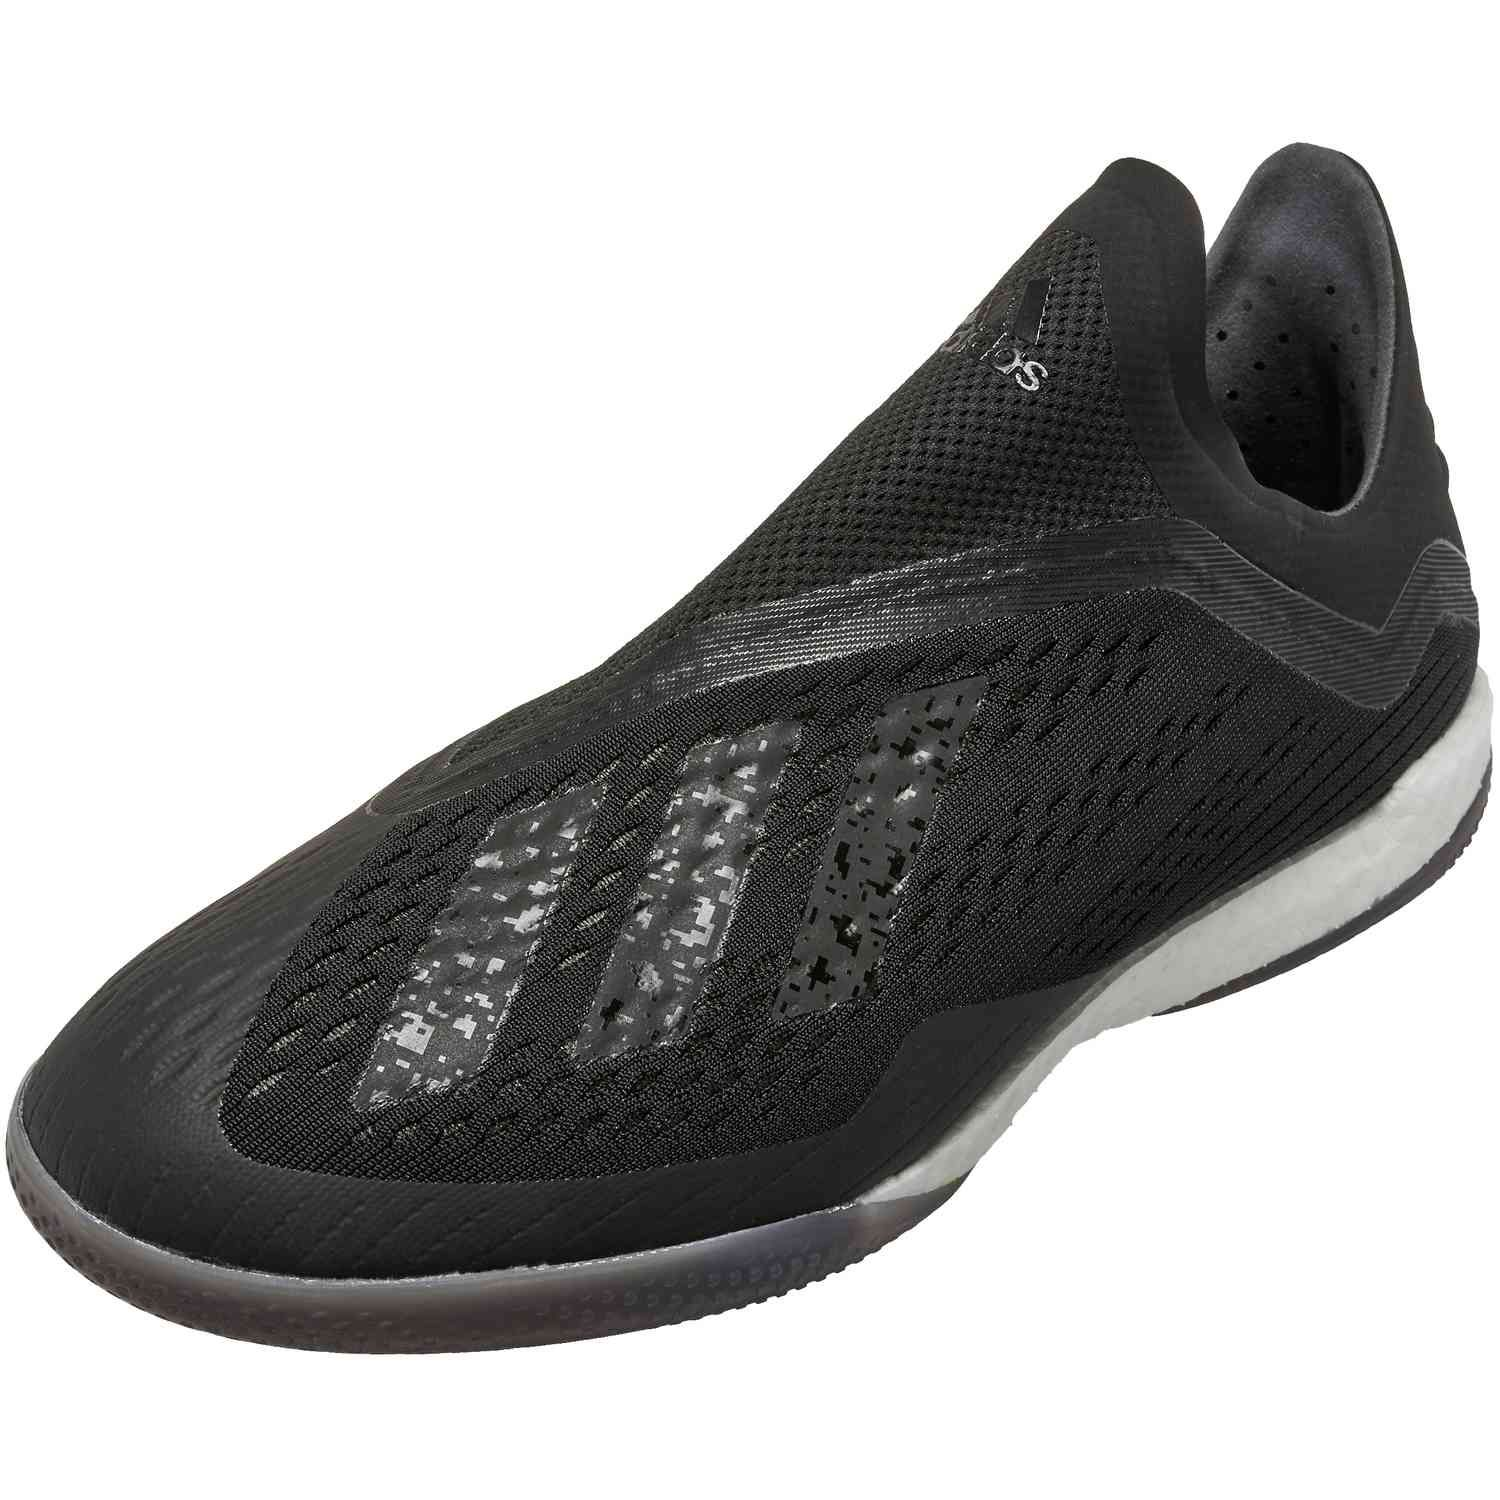 Shadow Mode adidas X Tango indoor soccer shoes. Get them at SoccerPro today! 3943b7057a